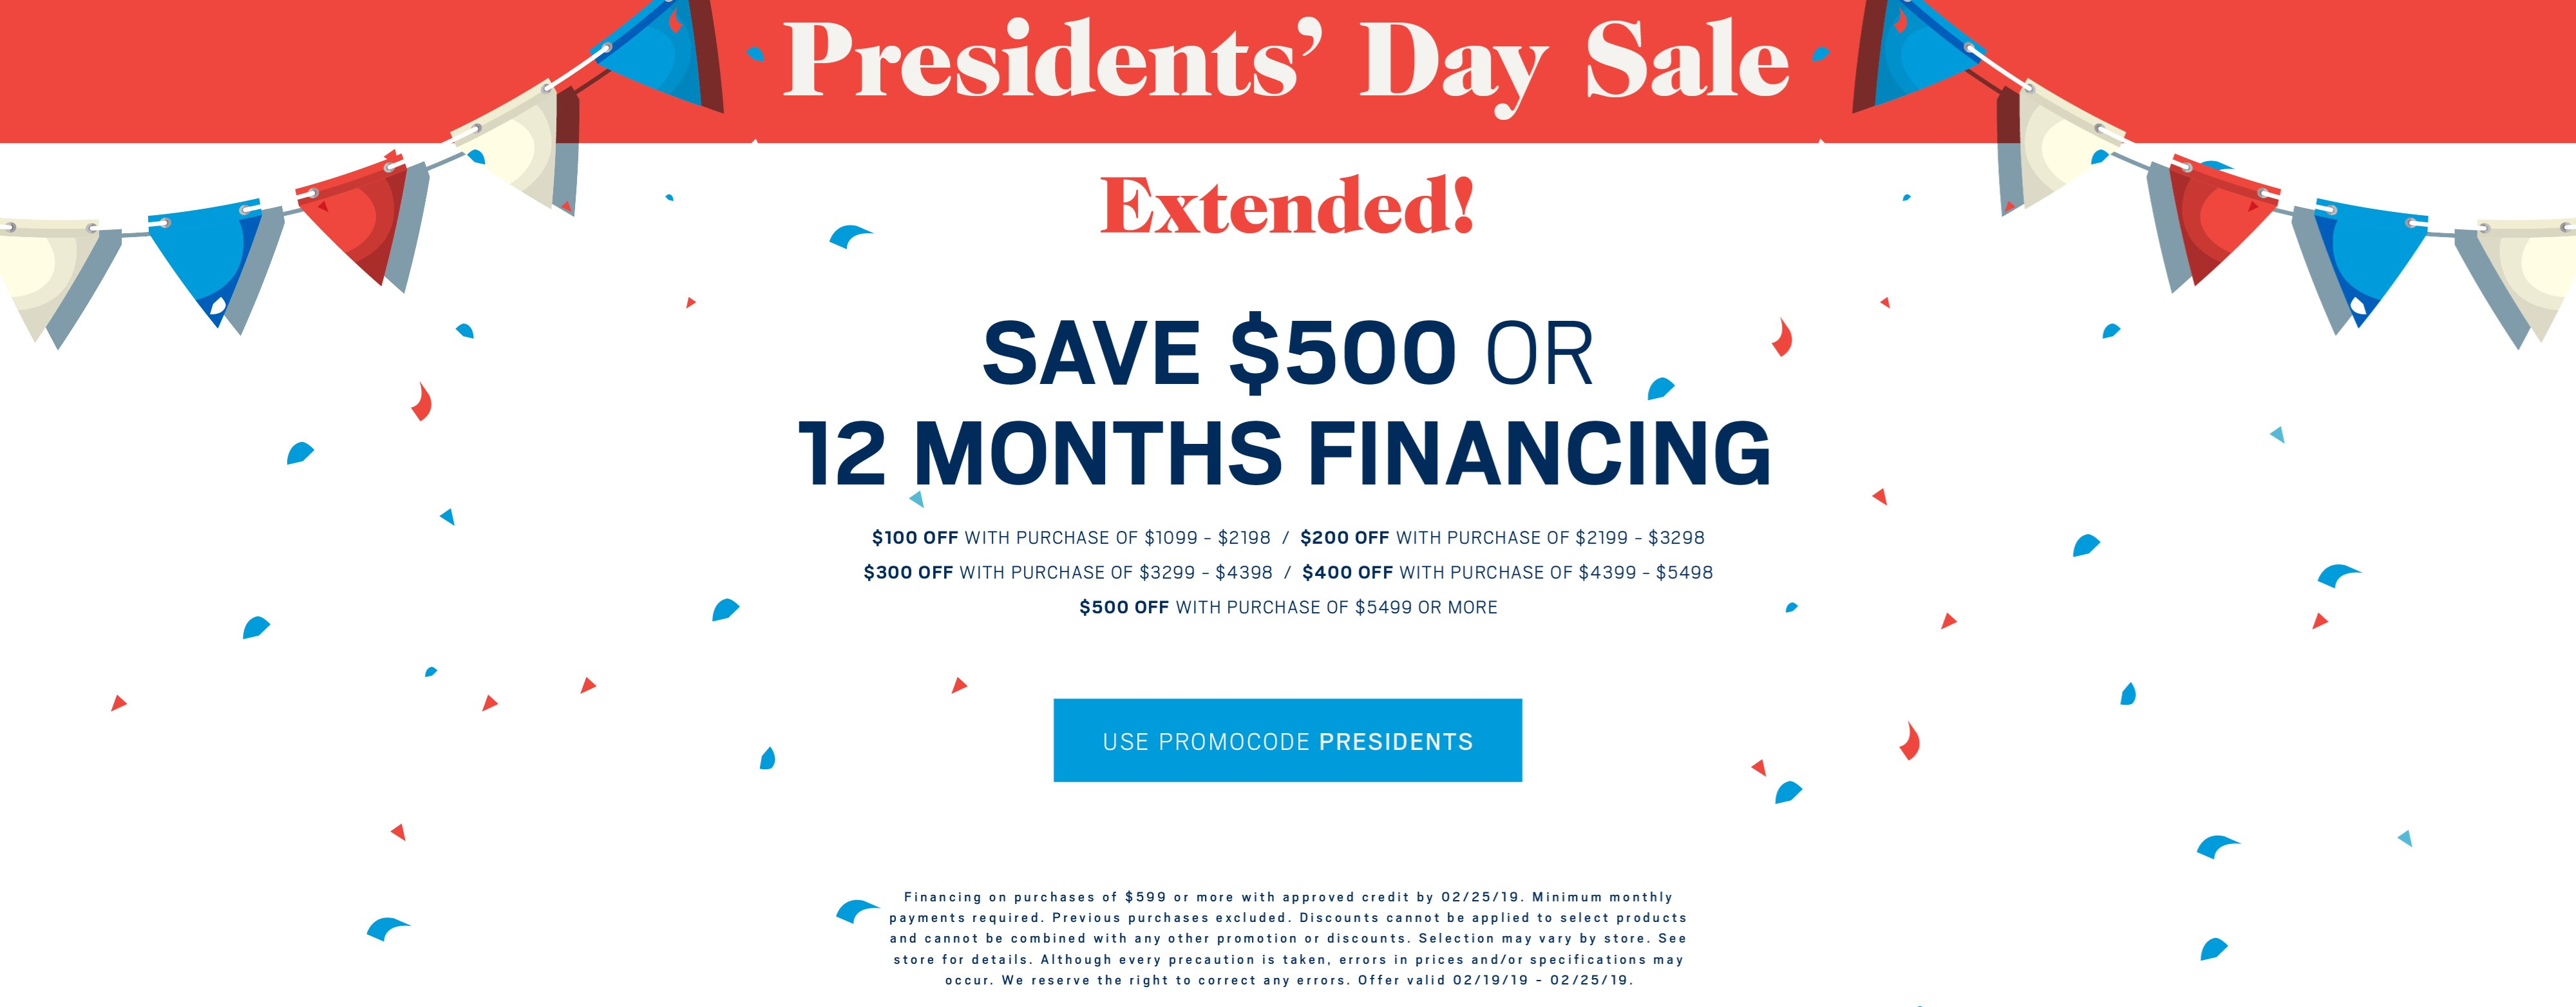 Save up to $500 or ask about 12 months financing; use promo code PRESIDENTS. See store for details.